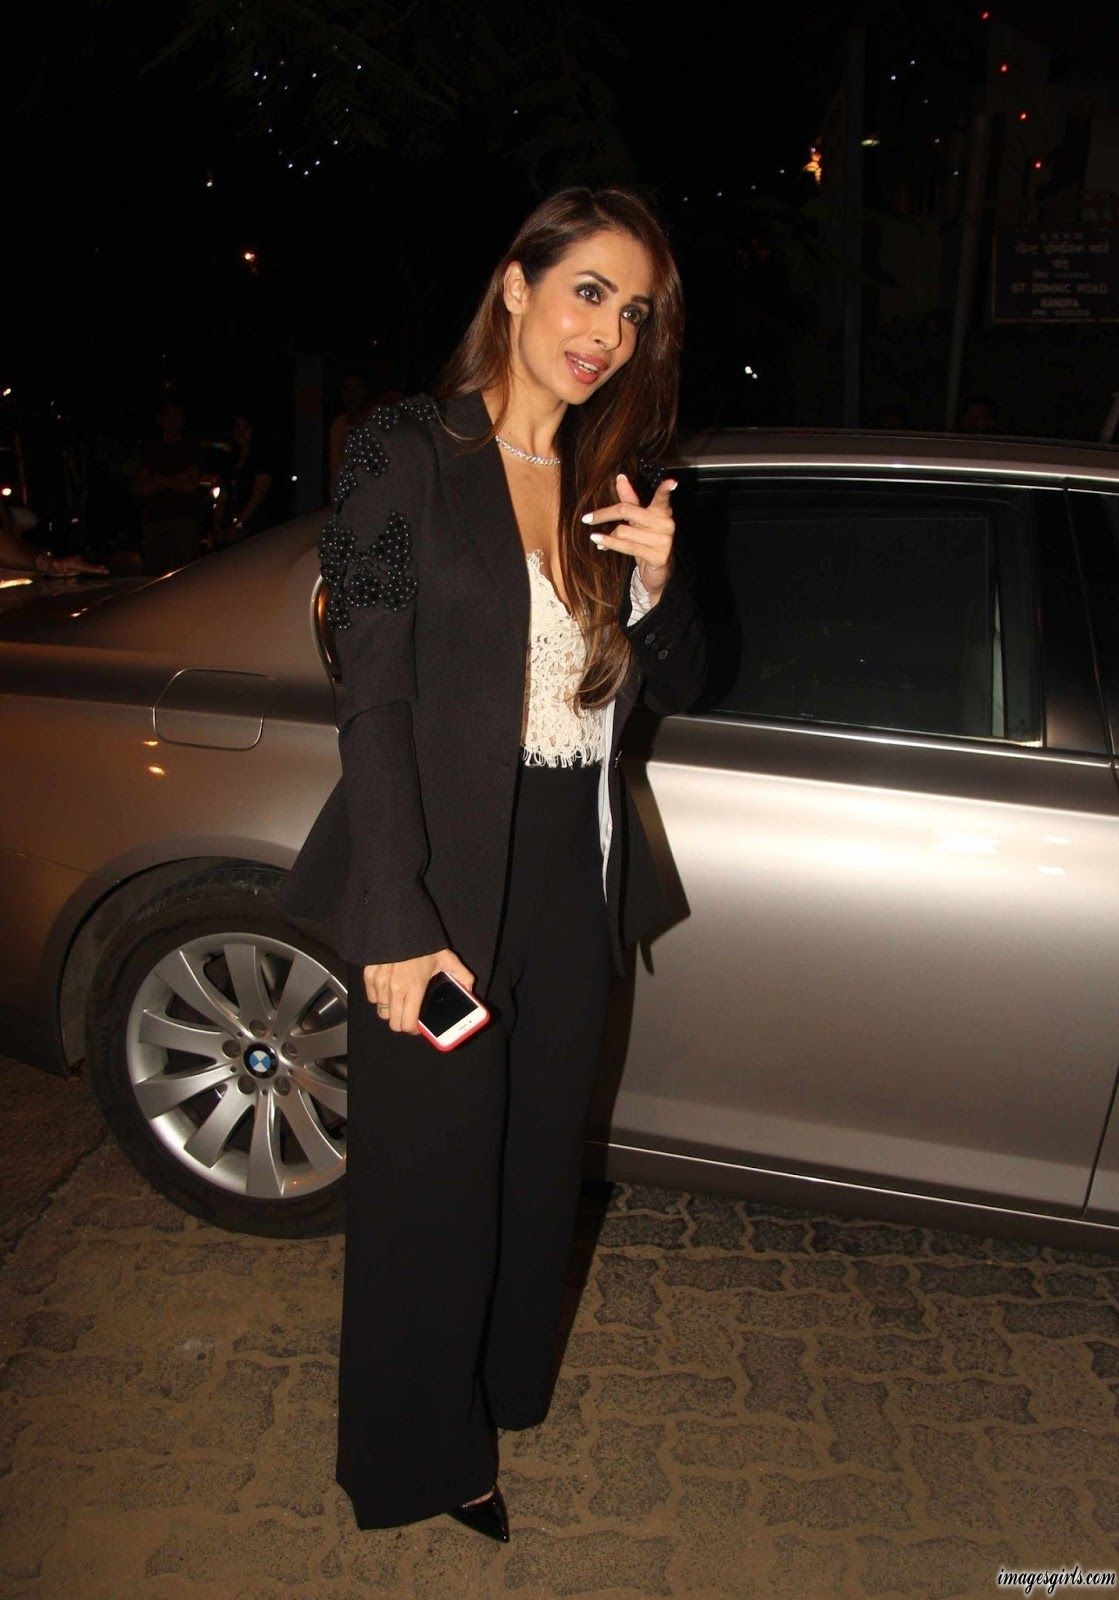 Malaika Arora Khan Looks Hot Photos In Mumbai - Images Girls-1971